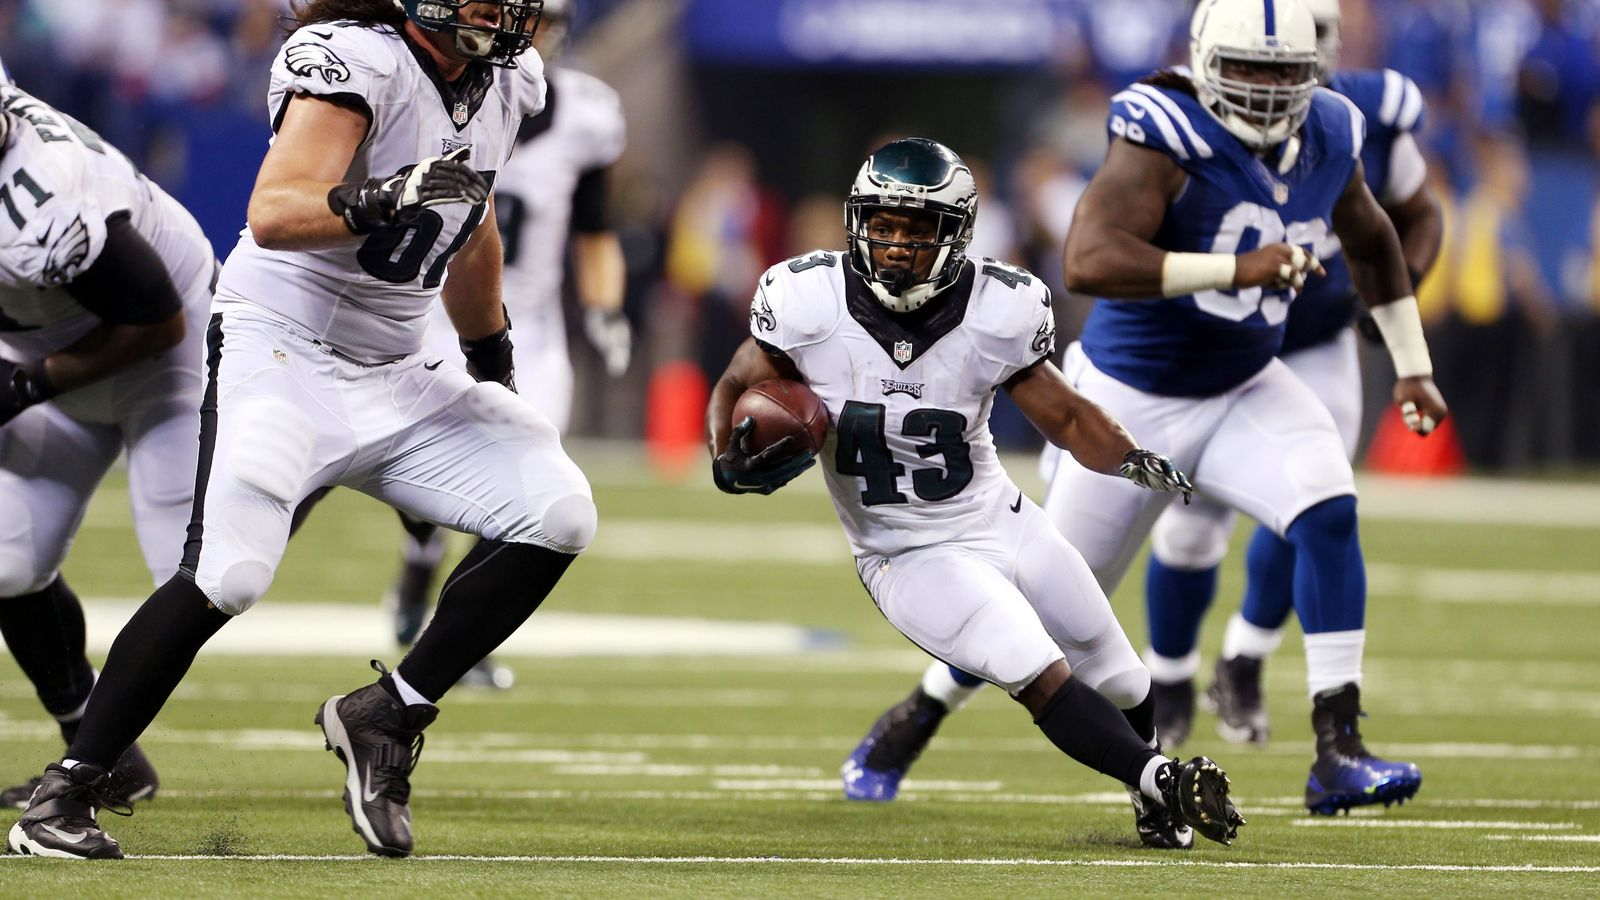 Eagles - Darren Sproles